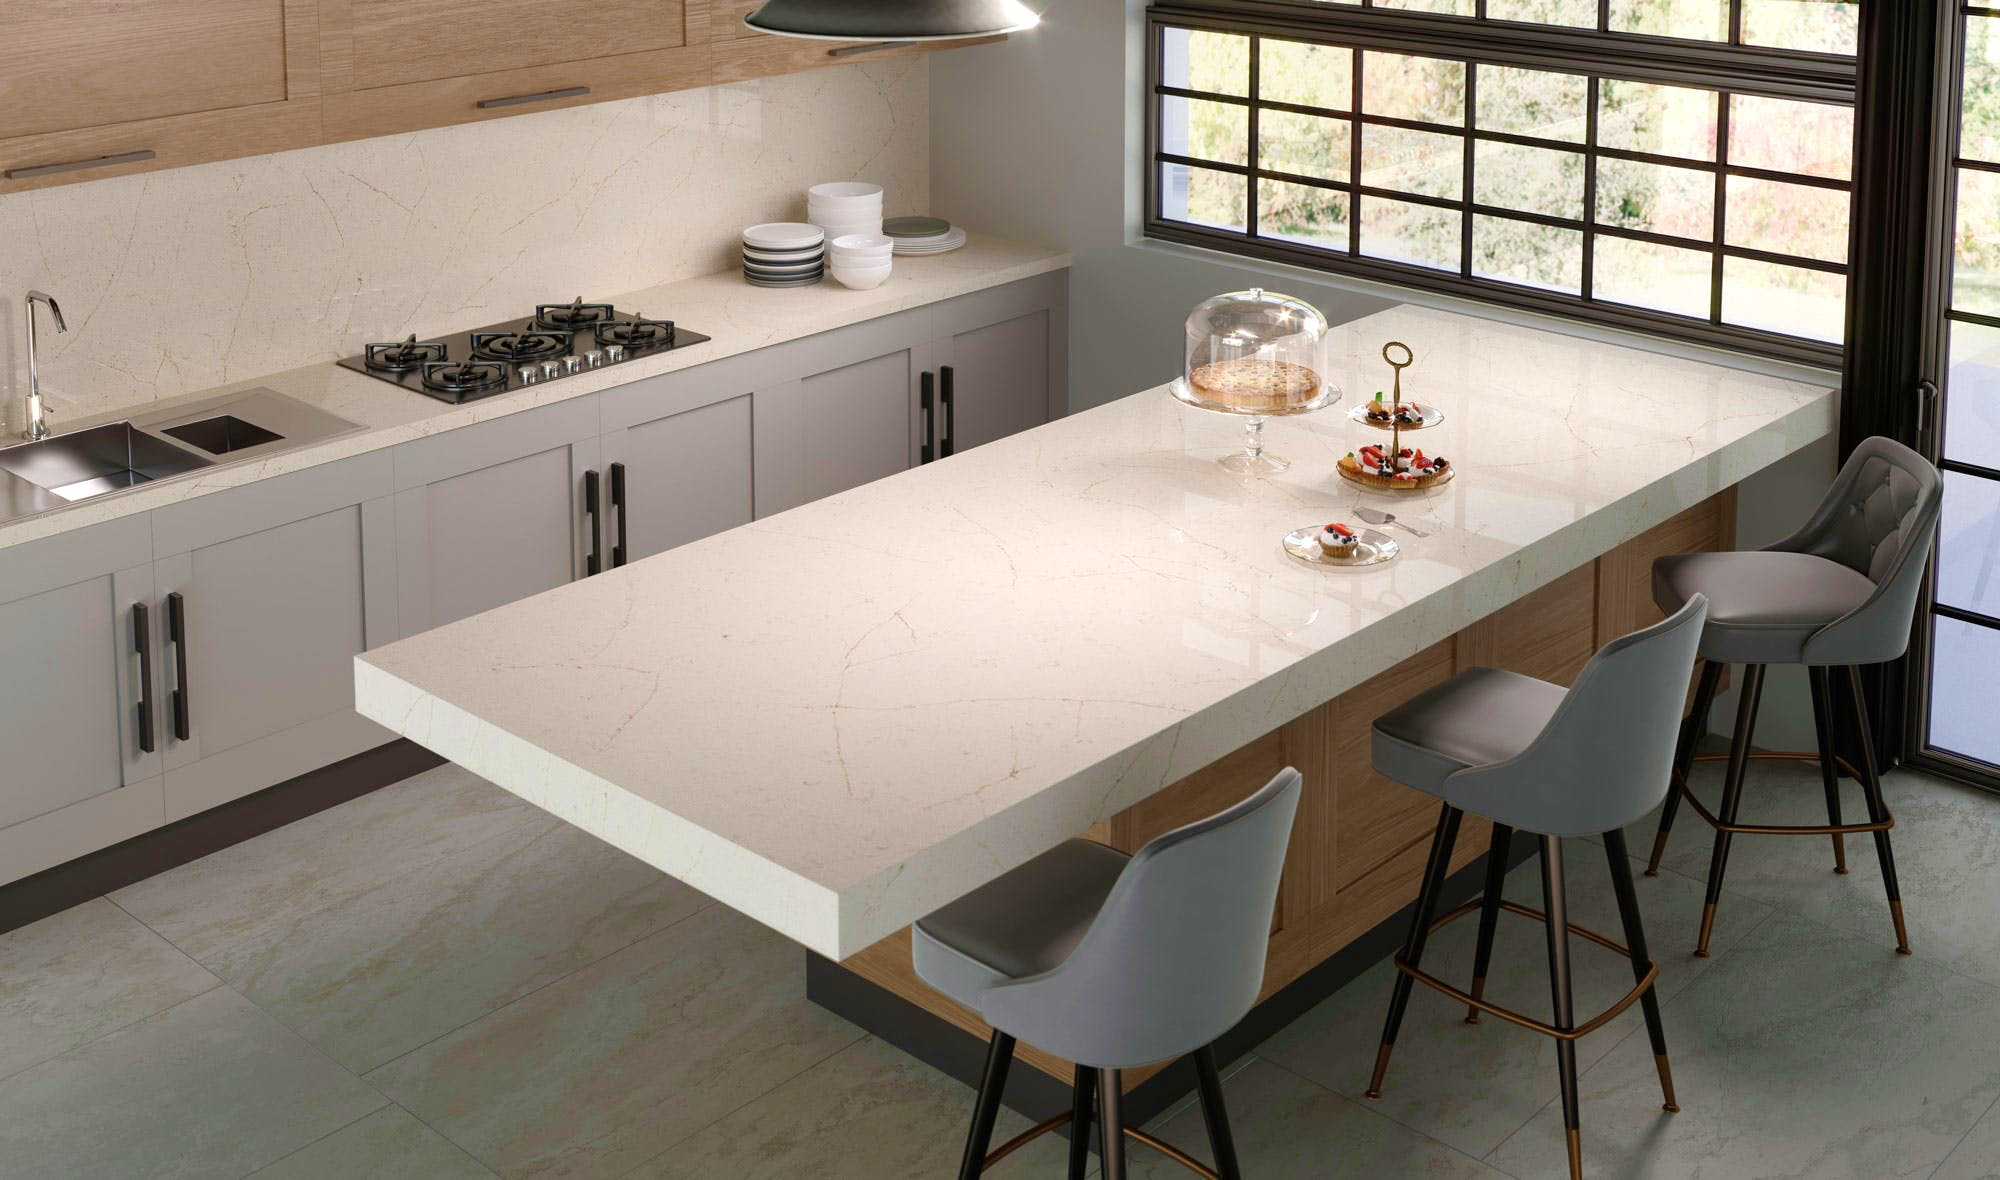 Image of Silestone Kitchen HD Eternal Marfil 3 1 2 6 in The Elegance of Crema Marfil Marble - Cosentino